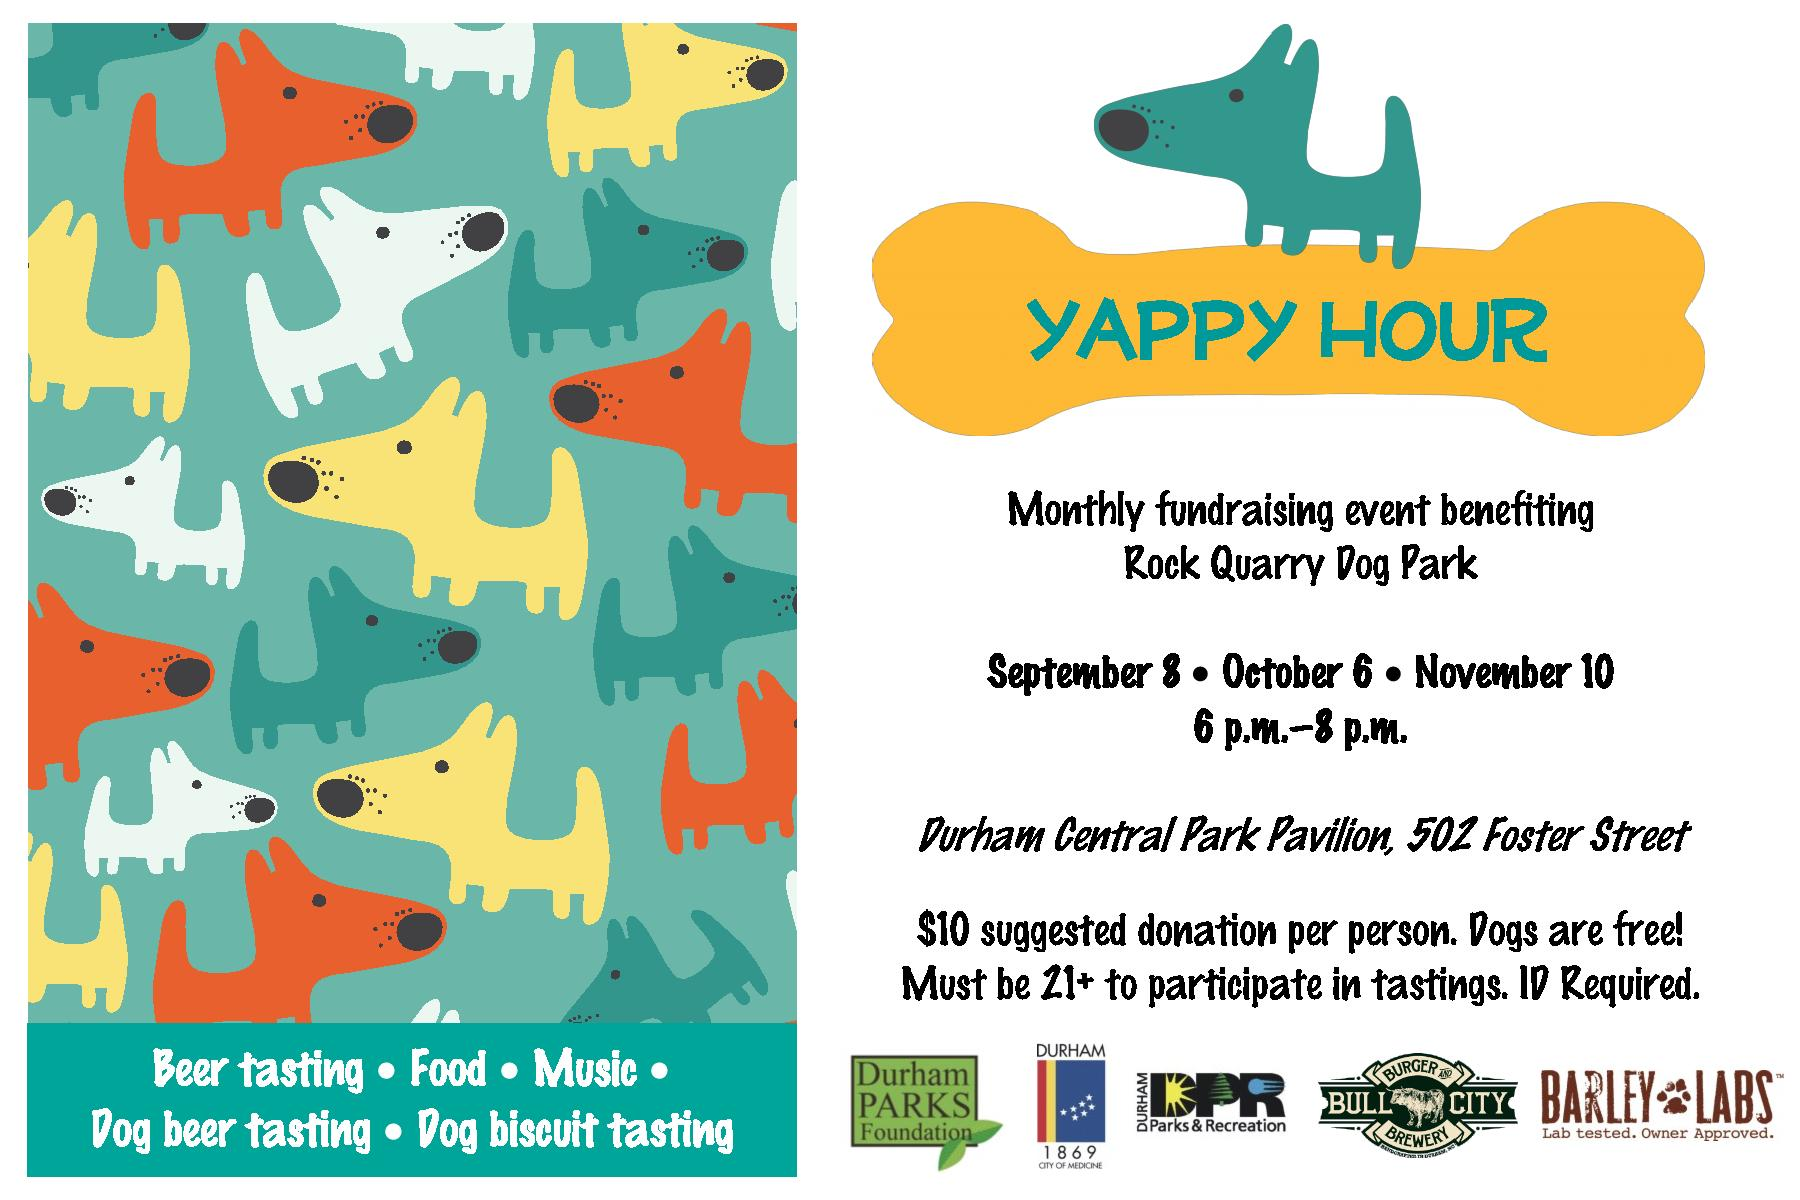 Yappy Hour Durham Central Park